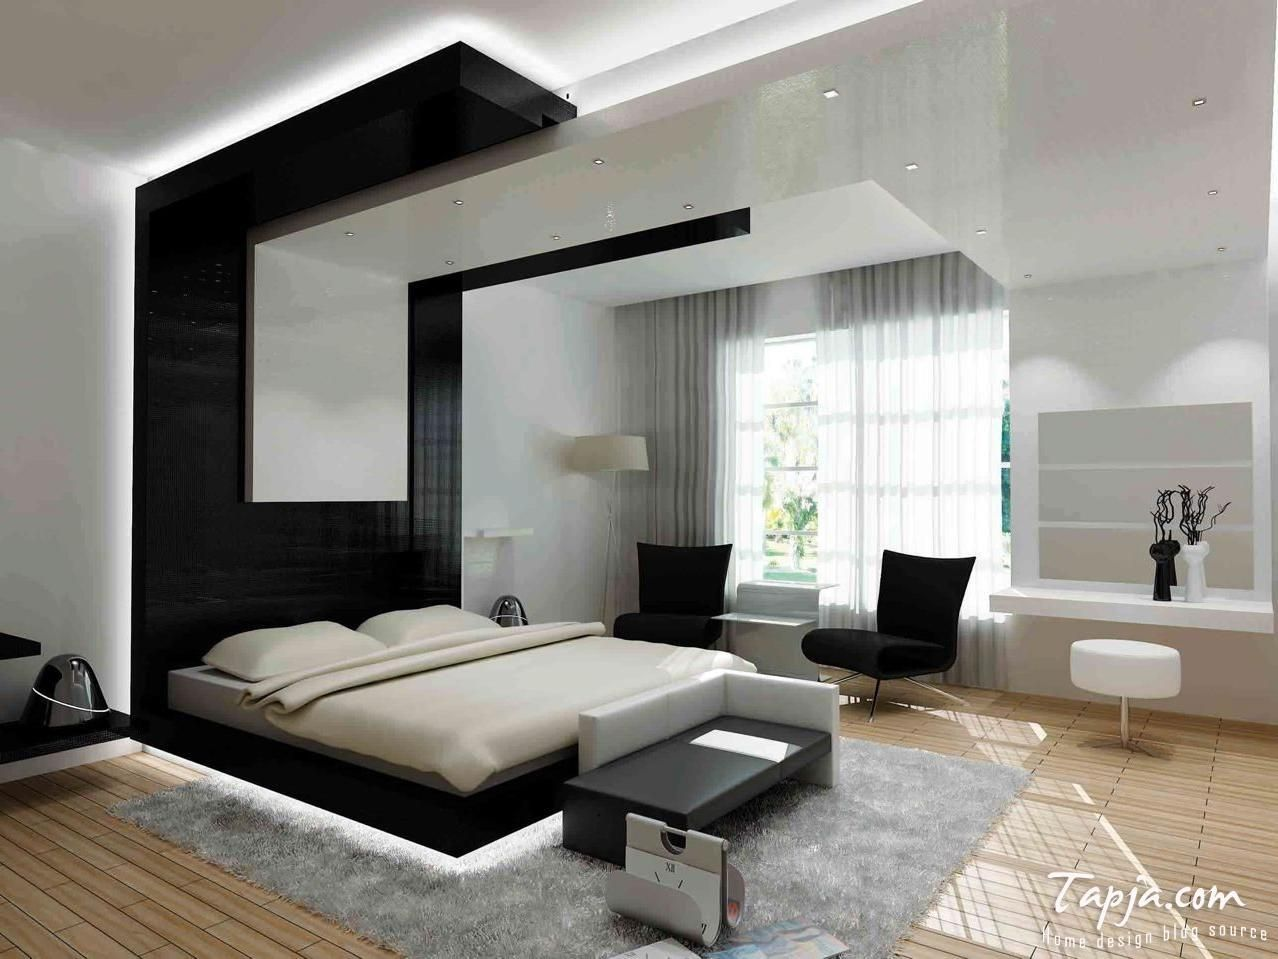 Stunning Modern Bedroom Black Color With Wooden Flooring Unfinished ...